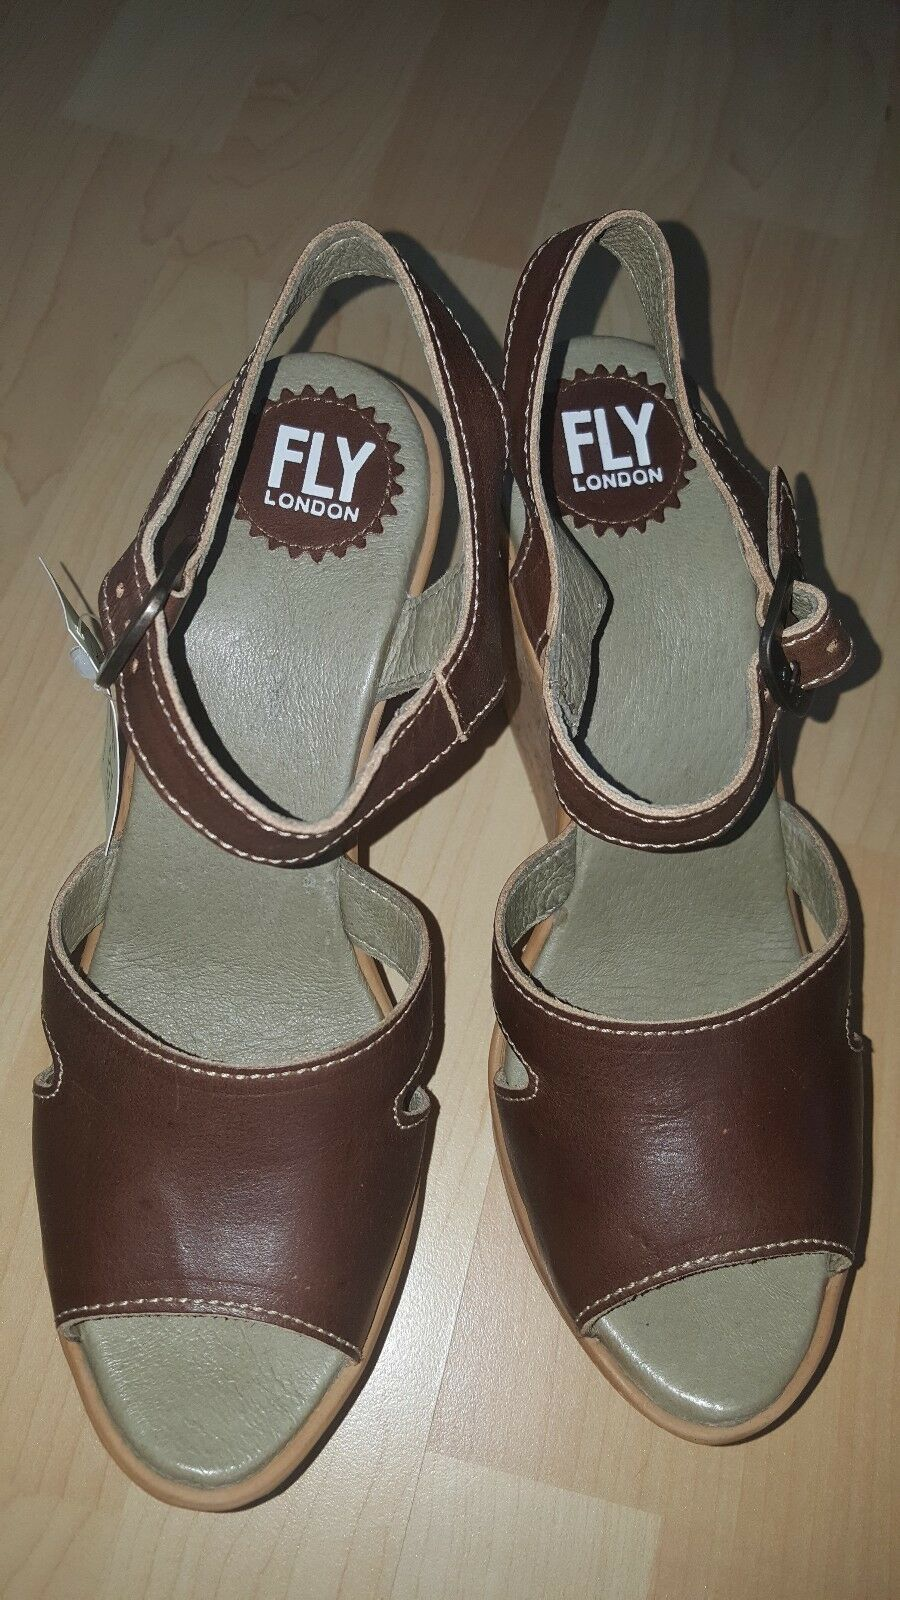 FLY WEDGE LONDON HULL978FLY LEATHER PLATFORM WEDGE FLY SANDALS UK 6 EUR 39 BNIB 30c930